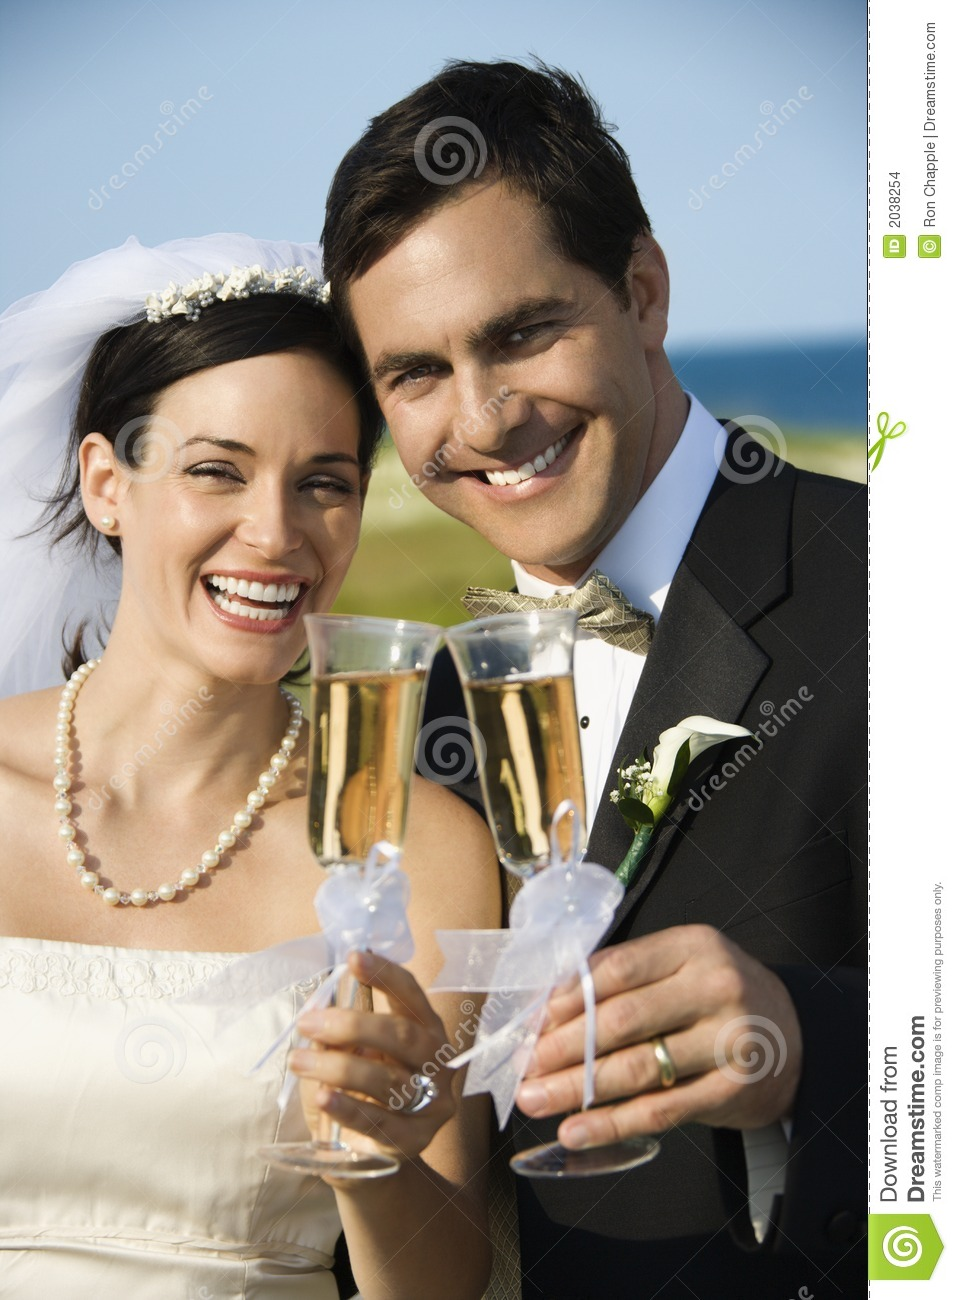 Download Bride And Groom Holding Champagne. Stock Photo - Image of woman, commitment: 2038254